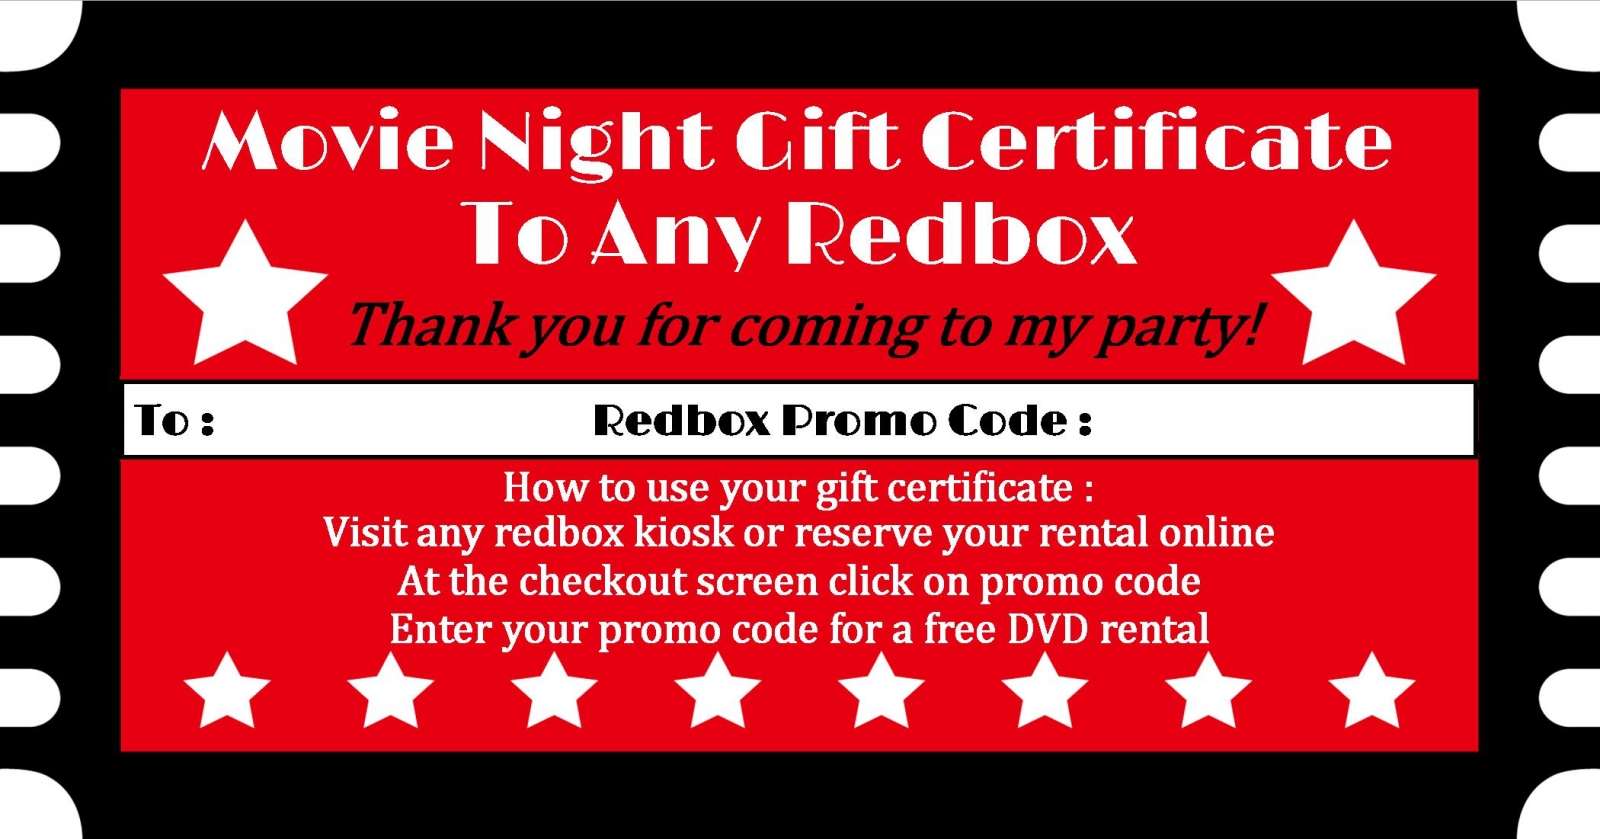 photo regarding Printable Redbox Gift Cards named Redbox Printable - Birthday Occasion Like - Electronic Report - Oneself Print